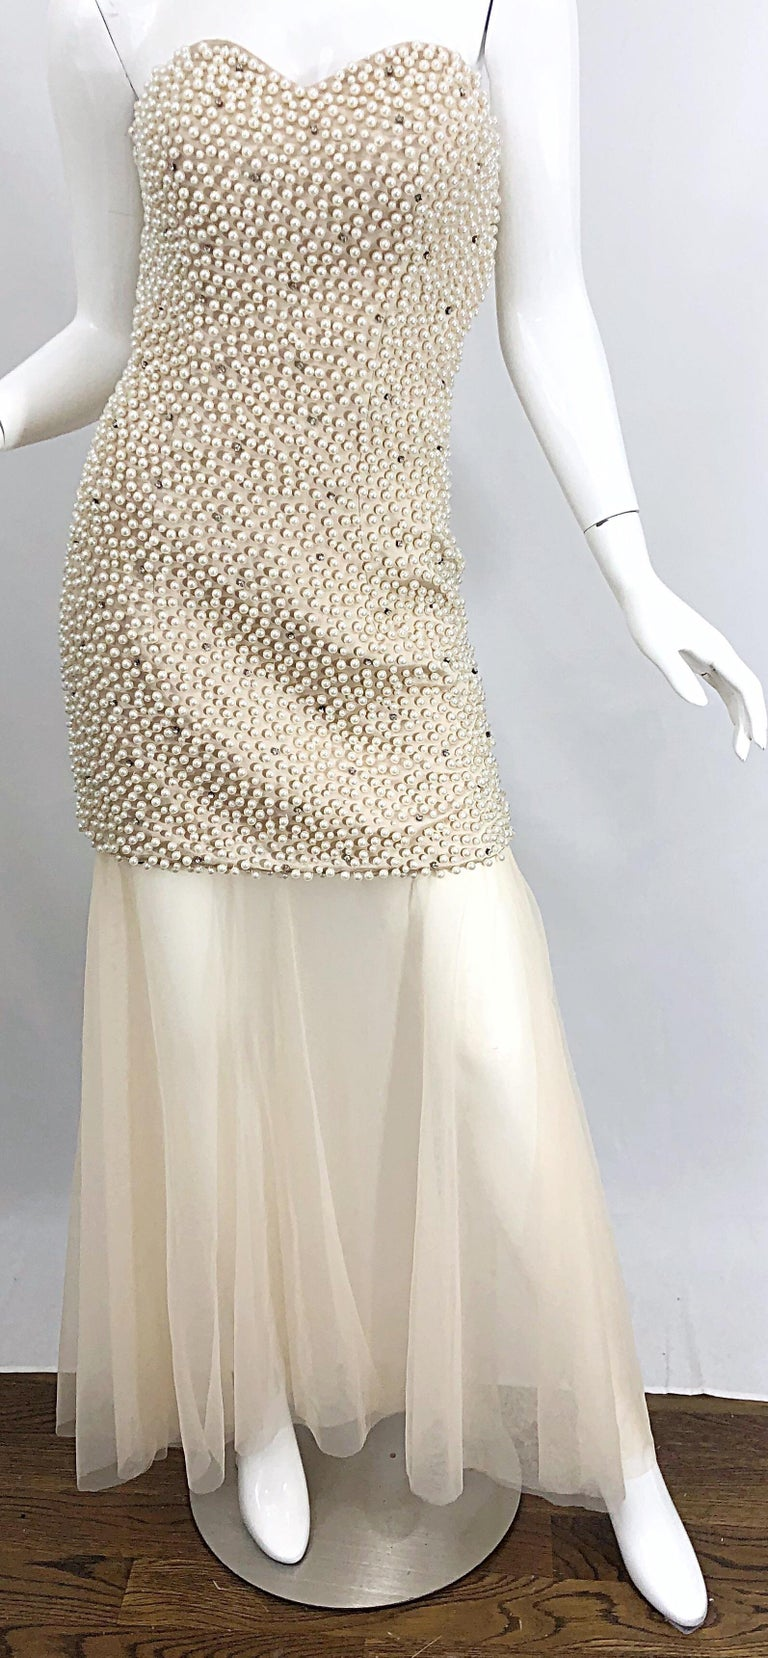 Phenomenal 1990s Couture Pearl + Rhinestone Encrusted Strapless Beige 90s Gown For Sale 2